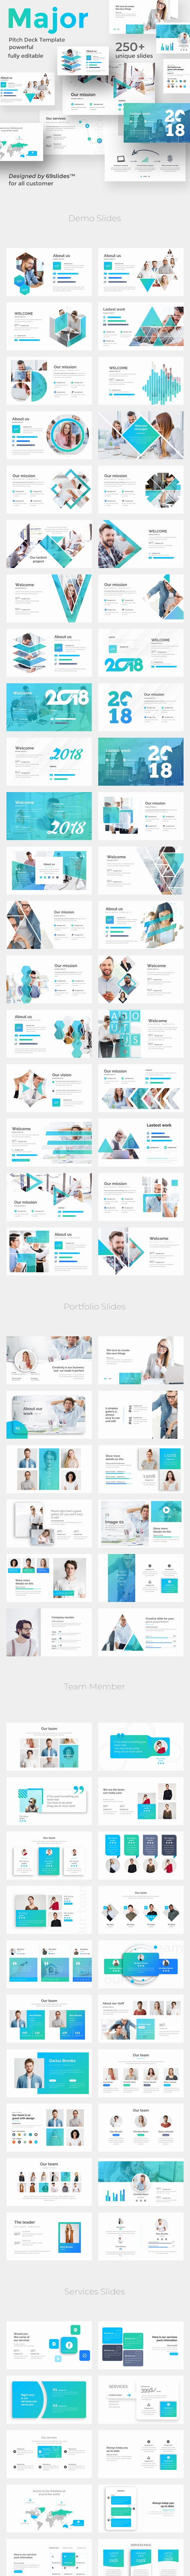 Major Business Pitch Deck Keynote Template - Business Keynote Templates